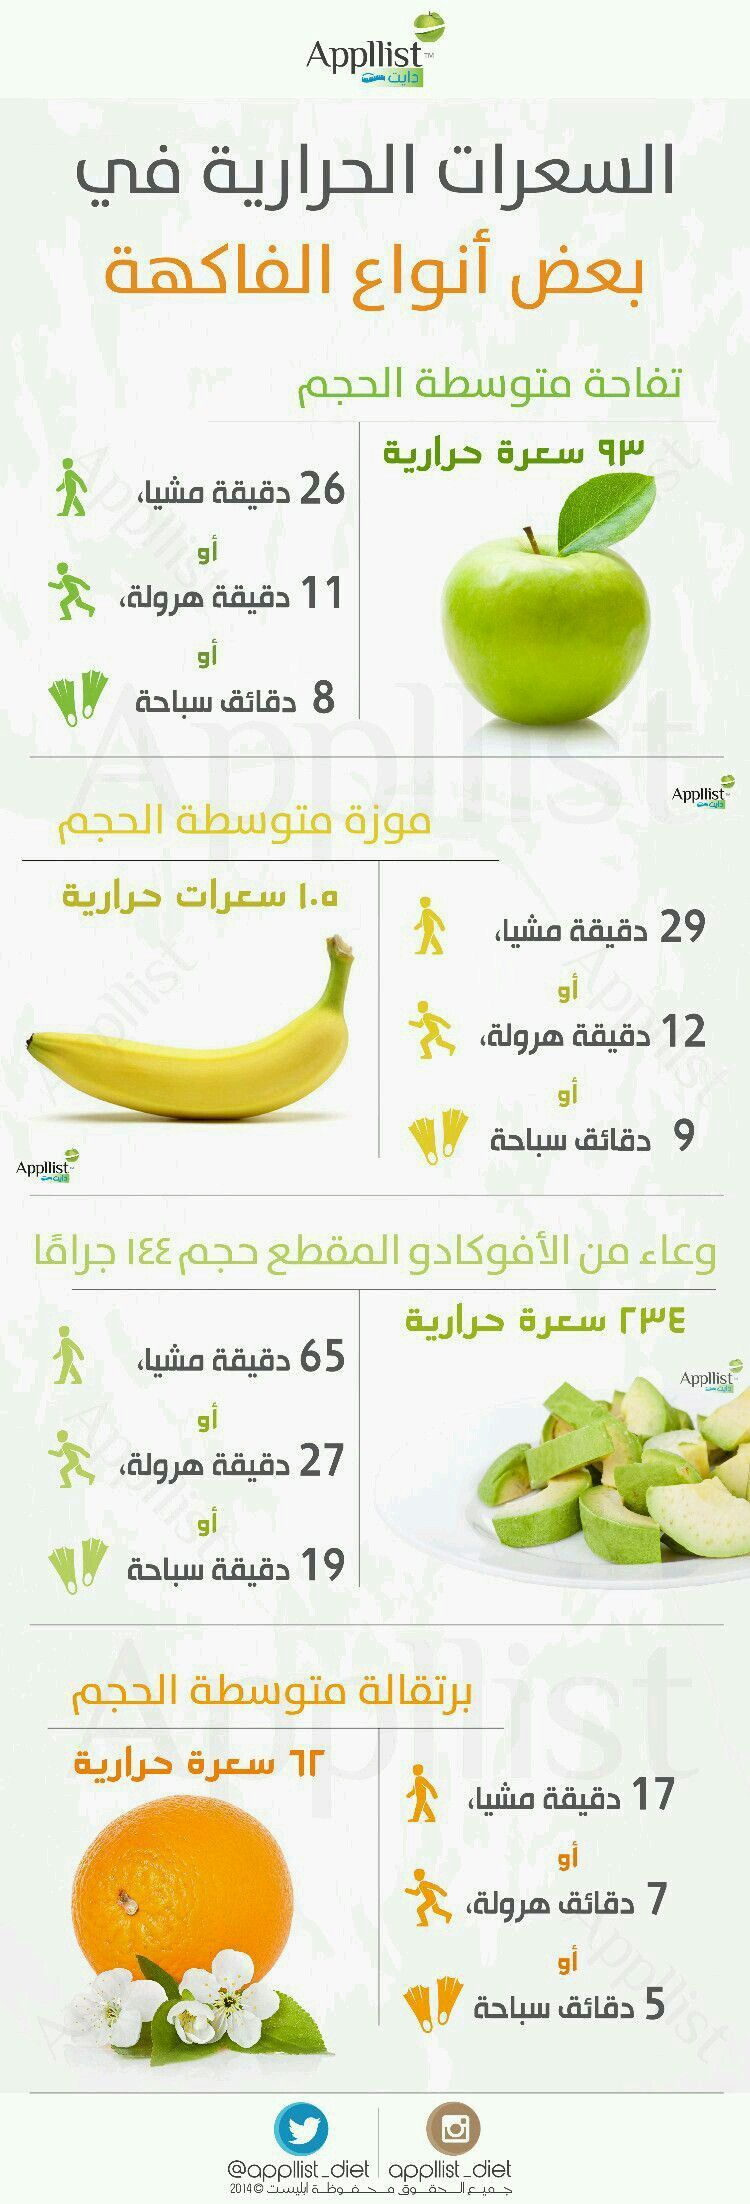 Pin By Msar On معلومة Health Fitness Nutrition Healthy Lifestyle Habits Health Food